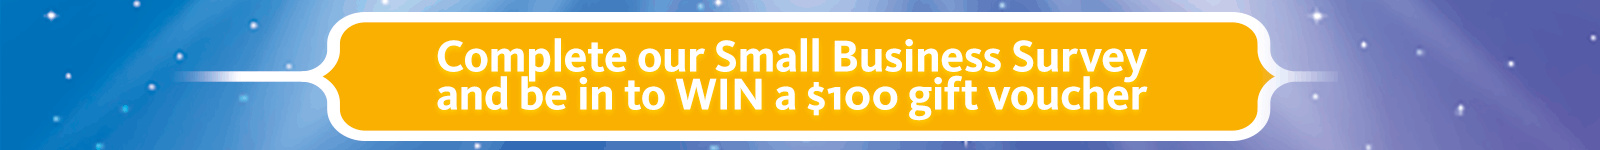 Complete our small business survey and be in to win from a choice of $100 gift vouchers